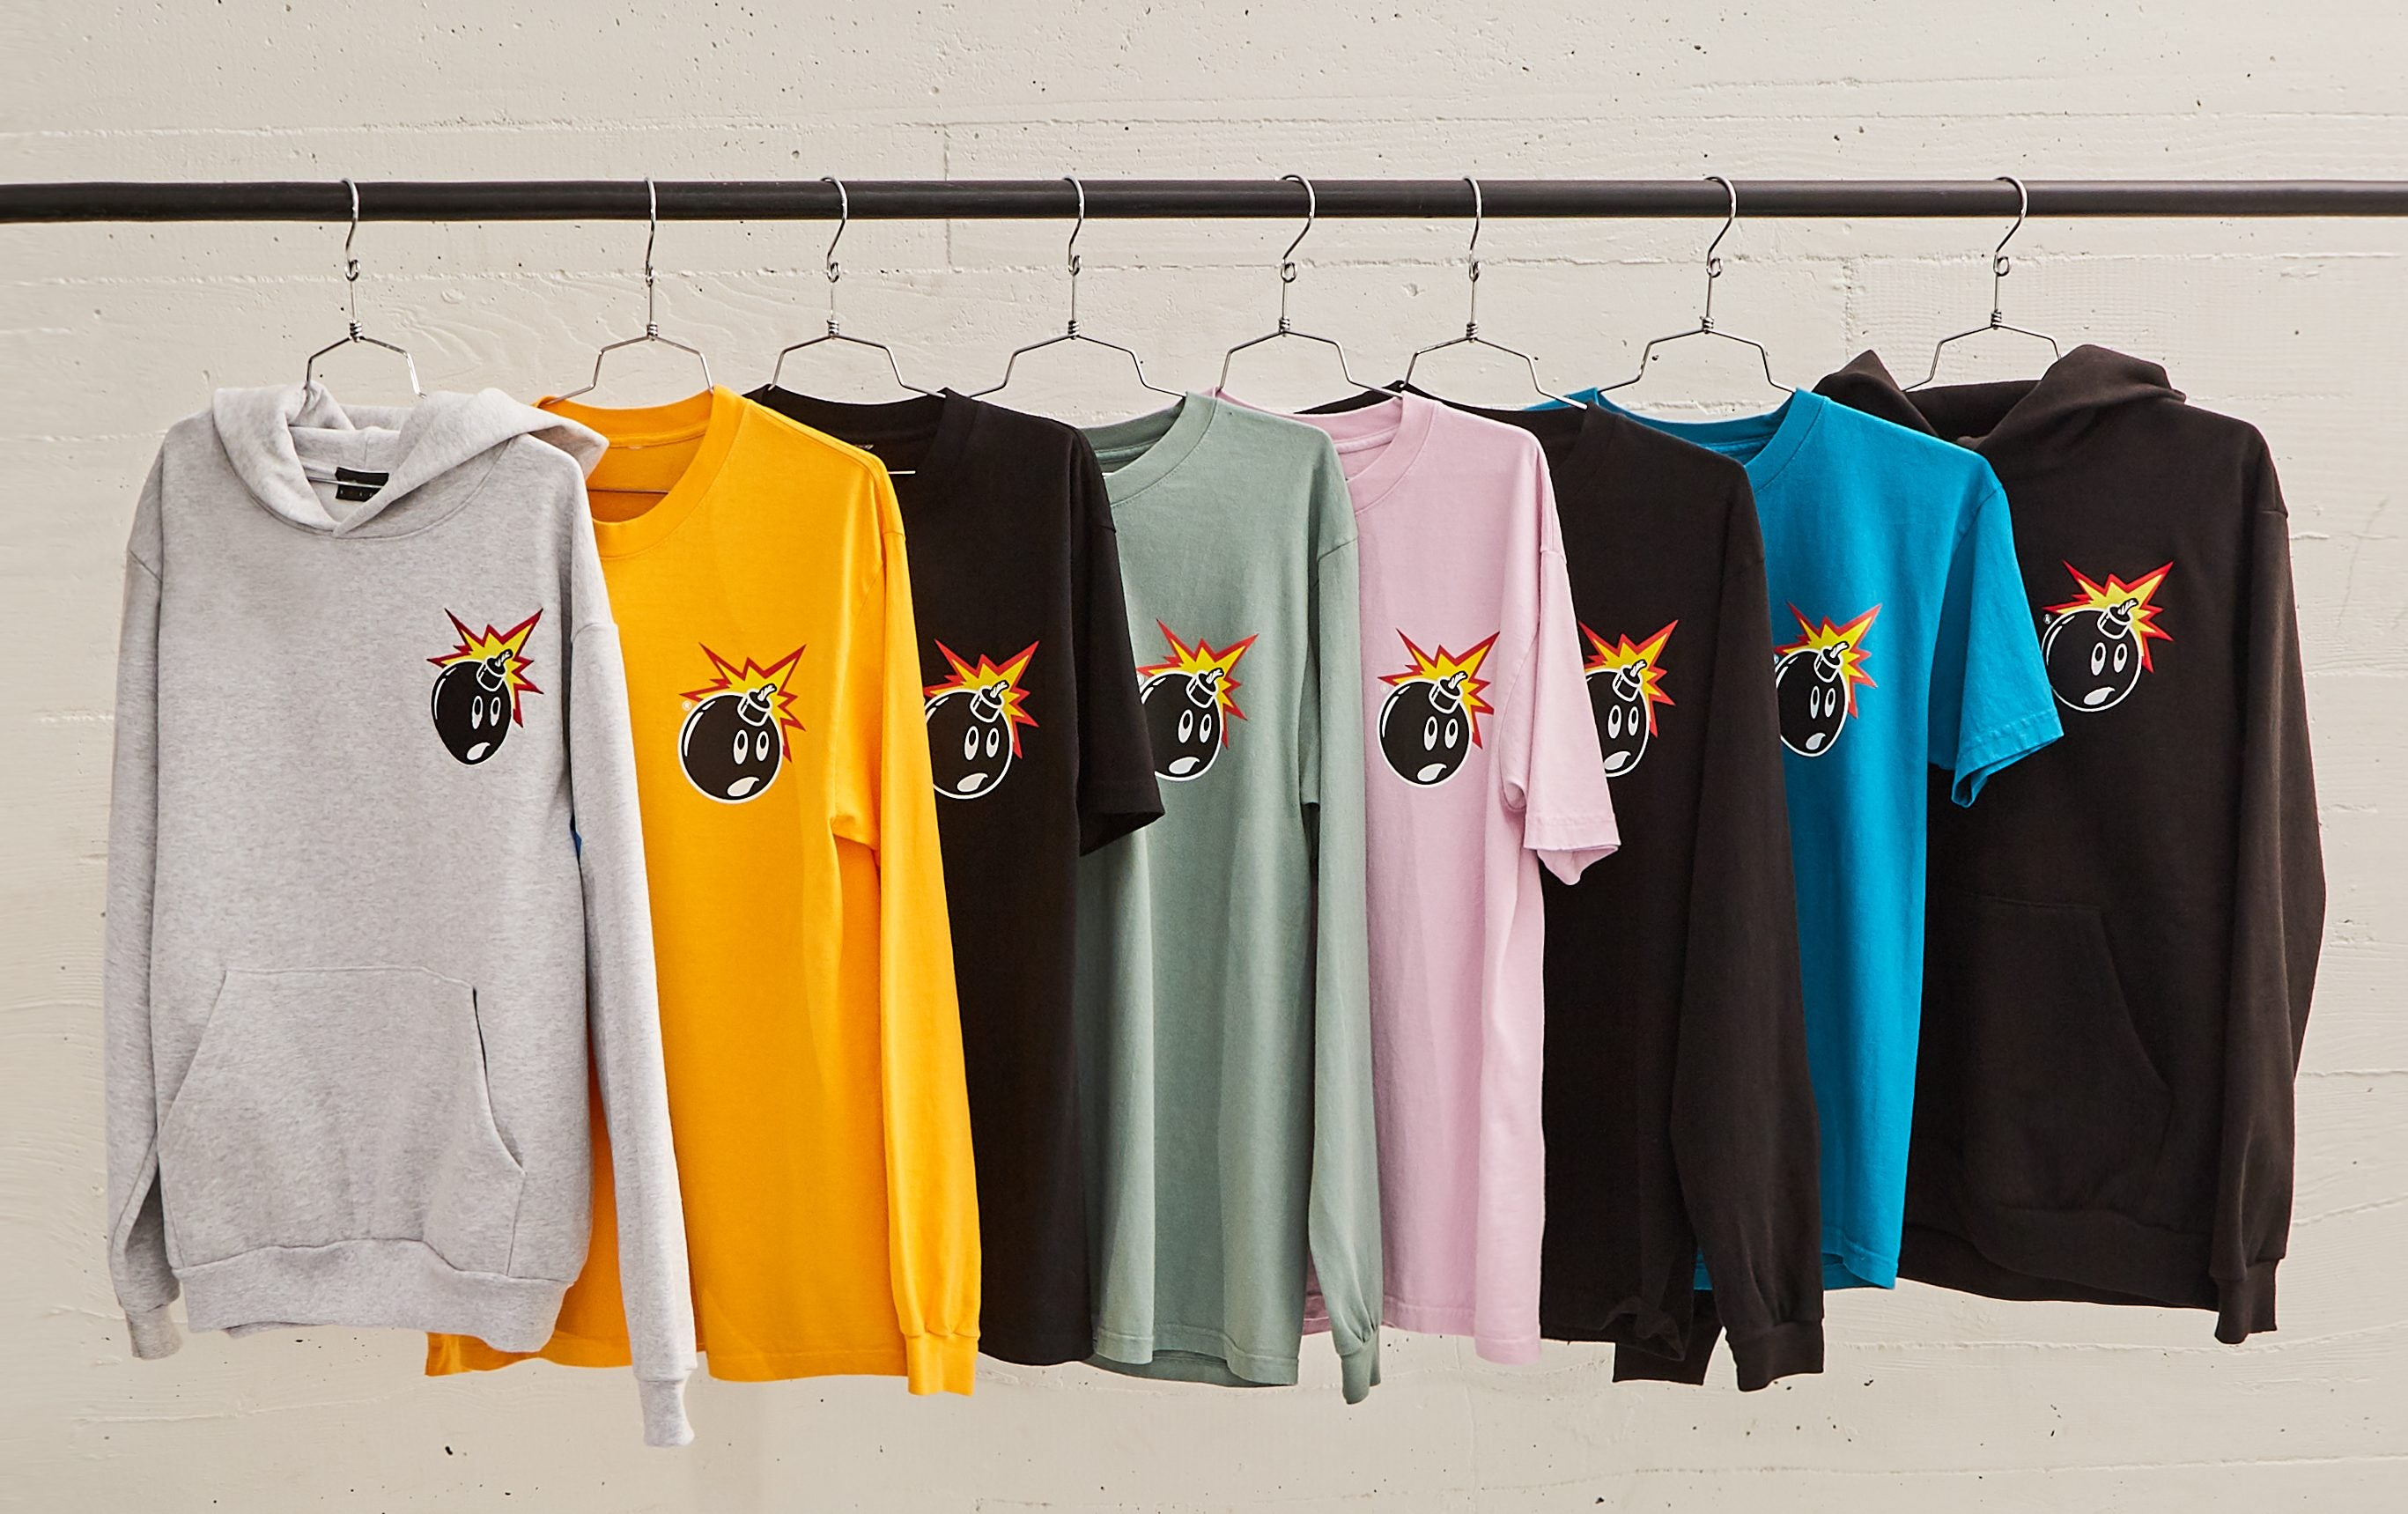 The Hundreds Presents the Adam Bomb Collection